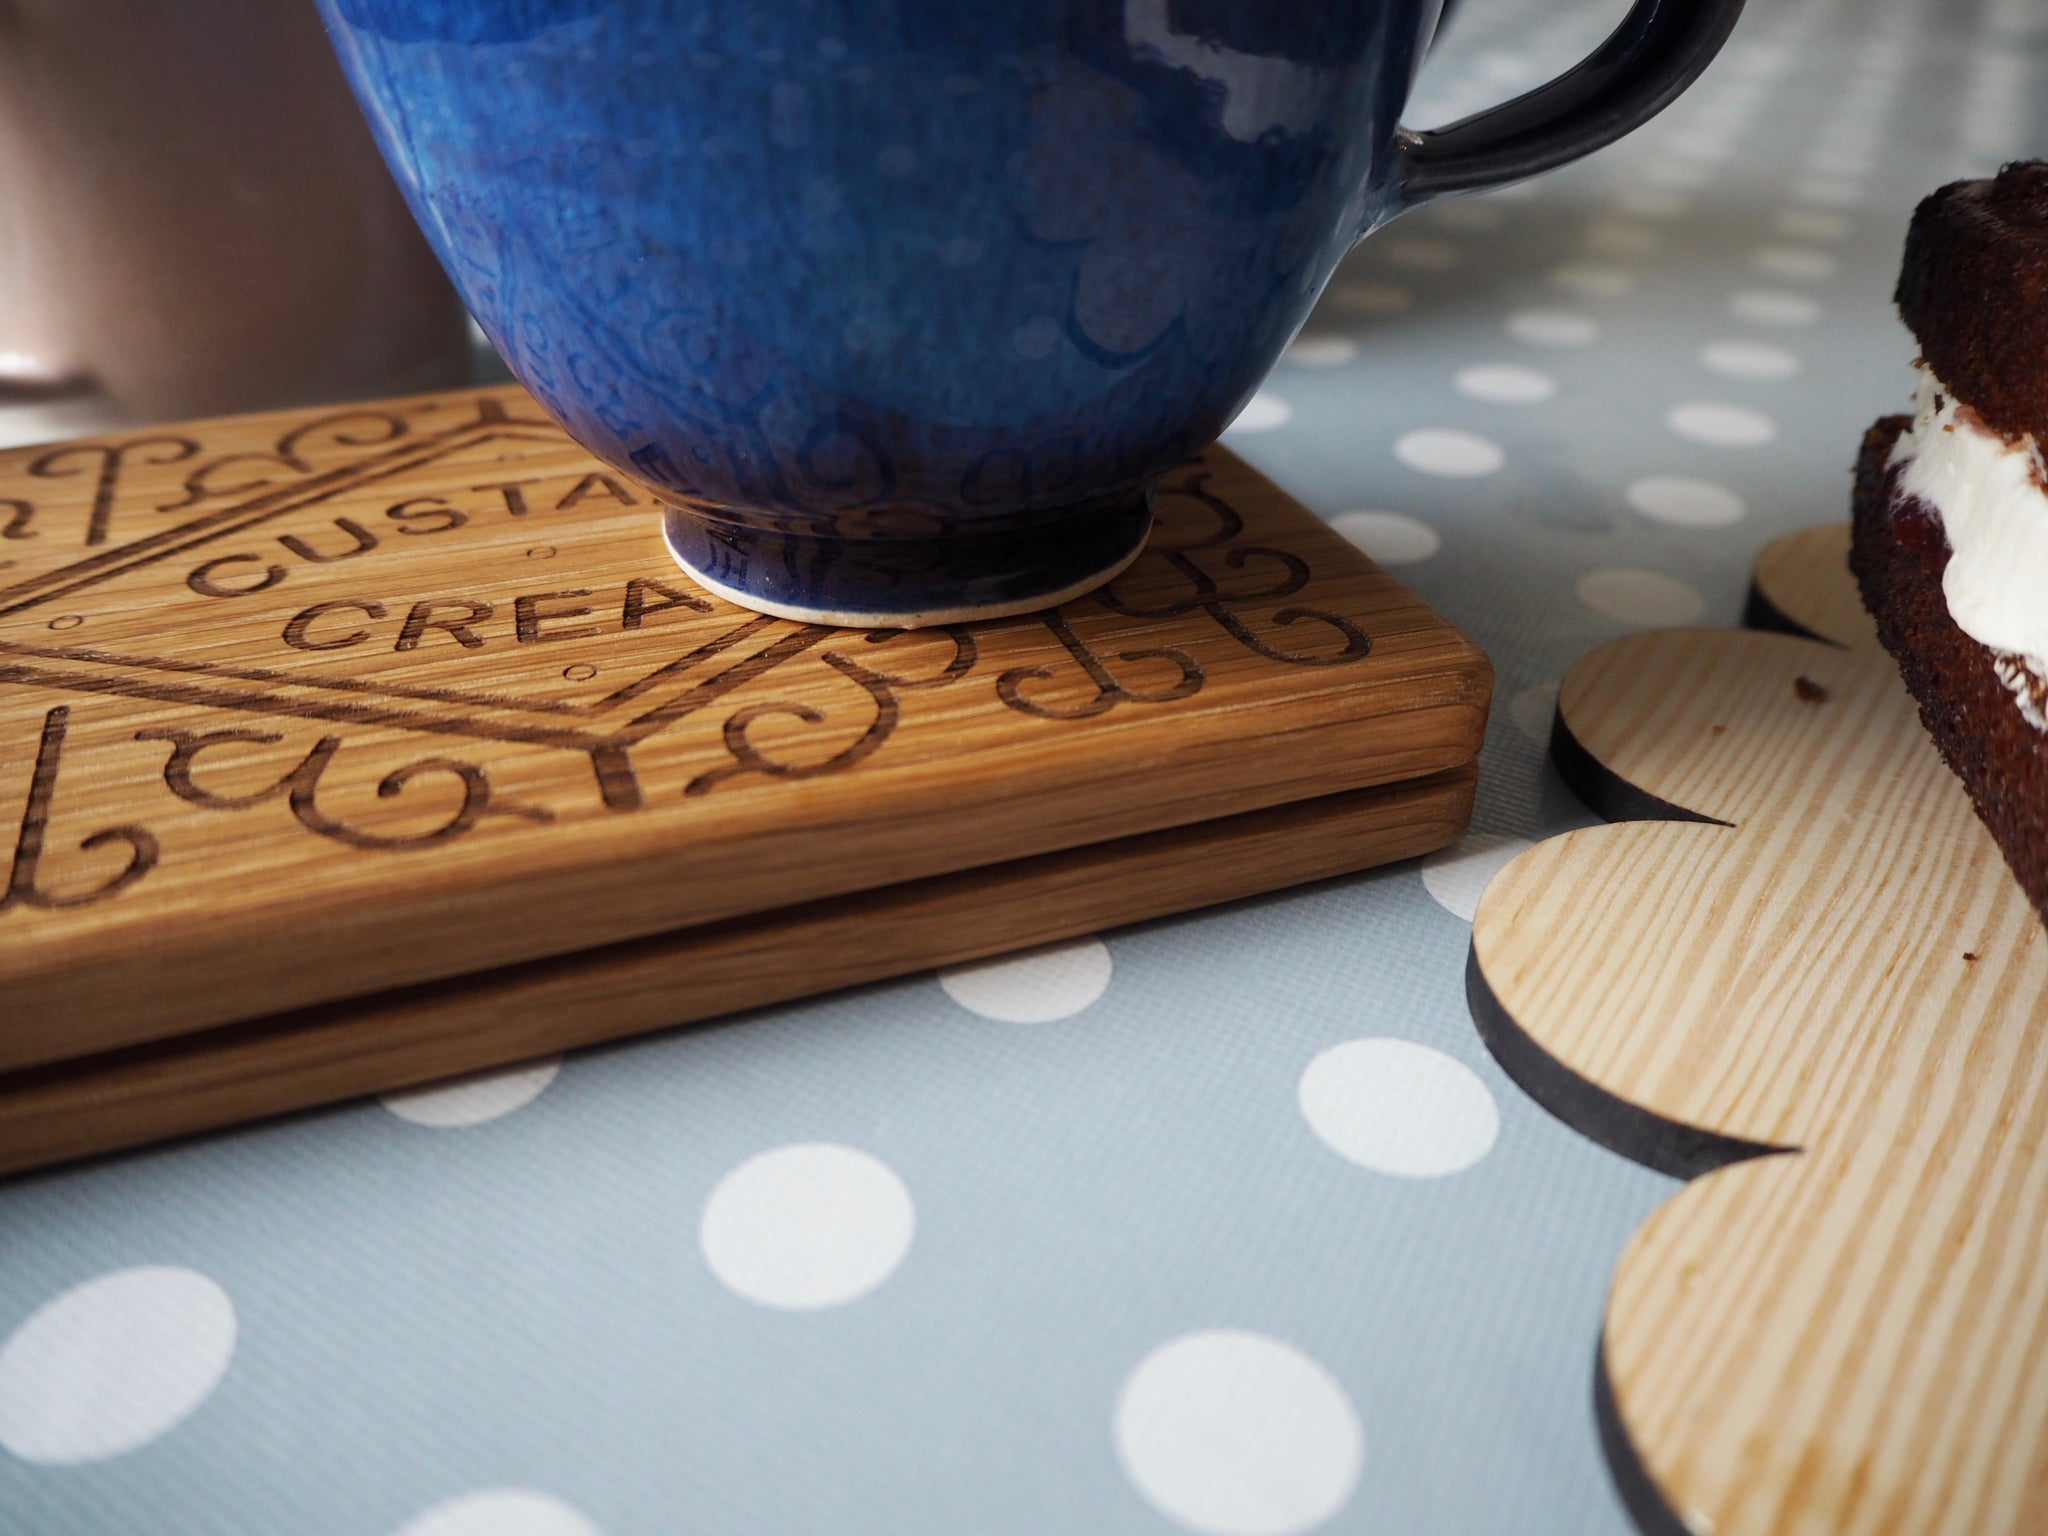 custard cream coaster